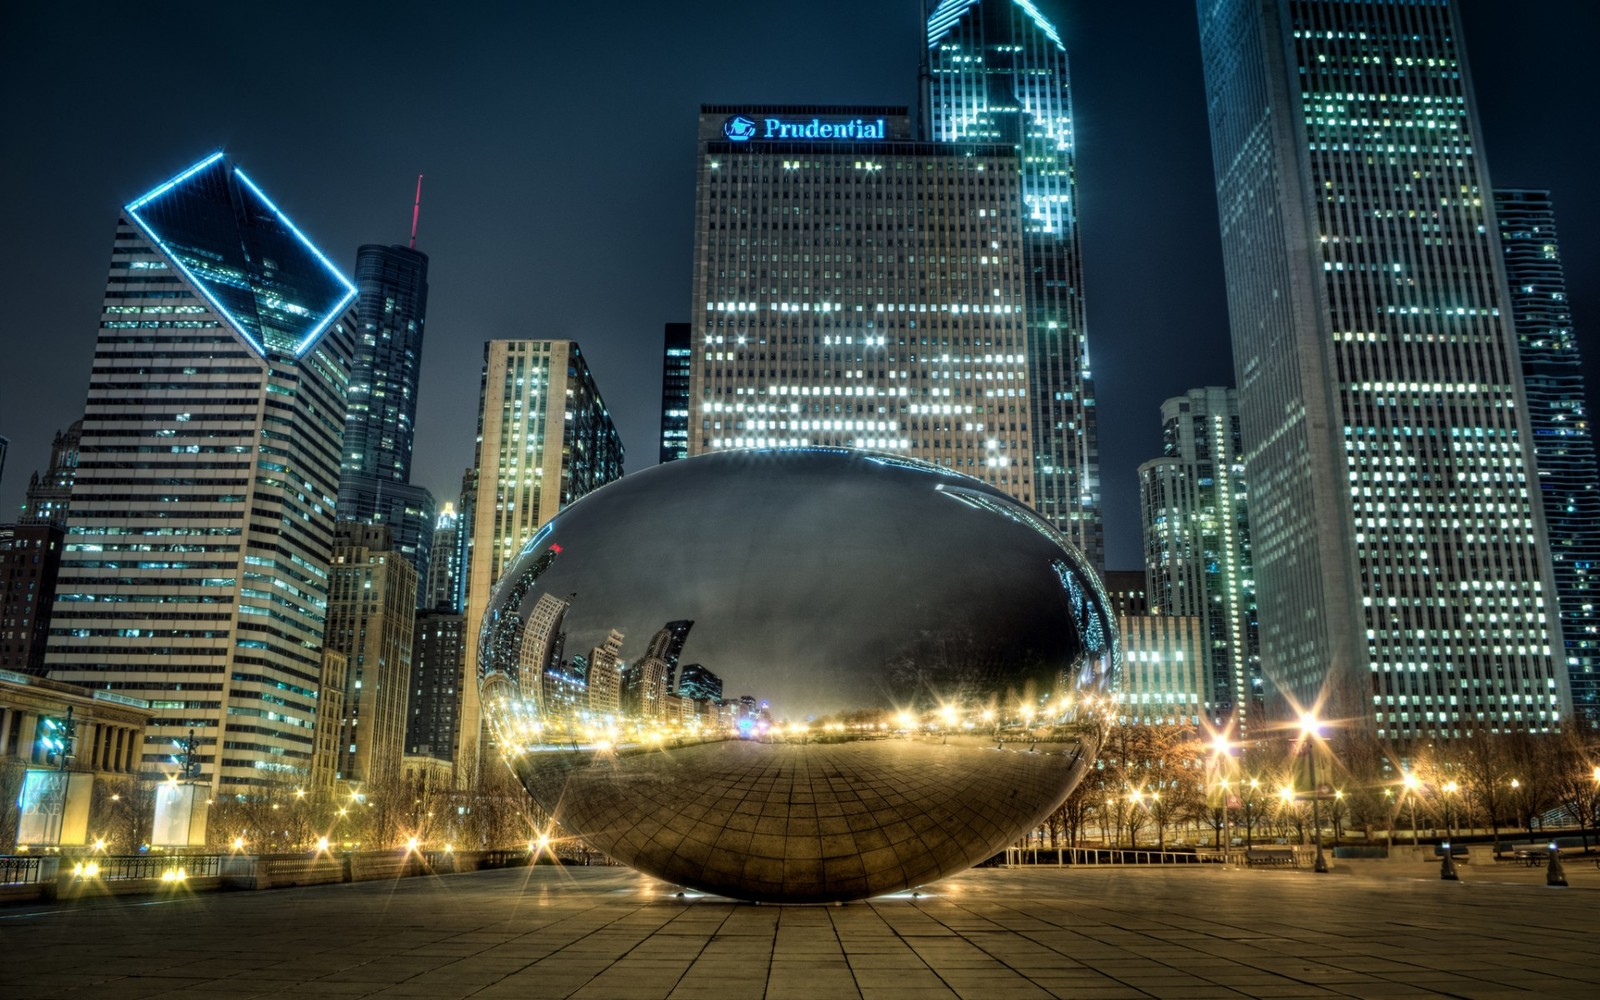 Night Skyline Wallpaper Chicago Bean Wiring Diagrams Foldback Current Limiter Circuit Diagram Tradeoficcom Sky Gate South Side At And 14 Similar Items Rh Bonanza Com New